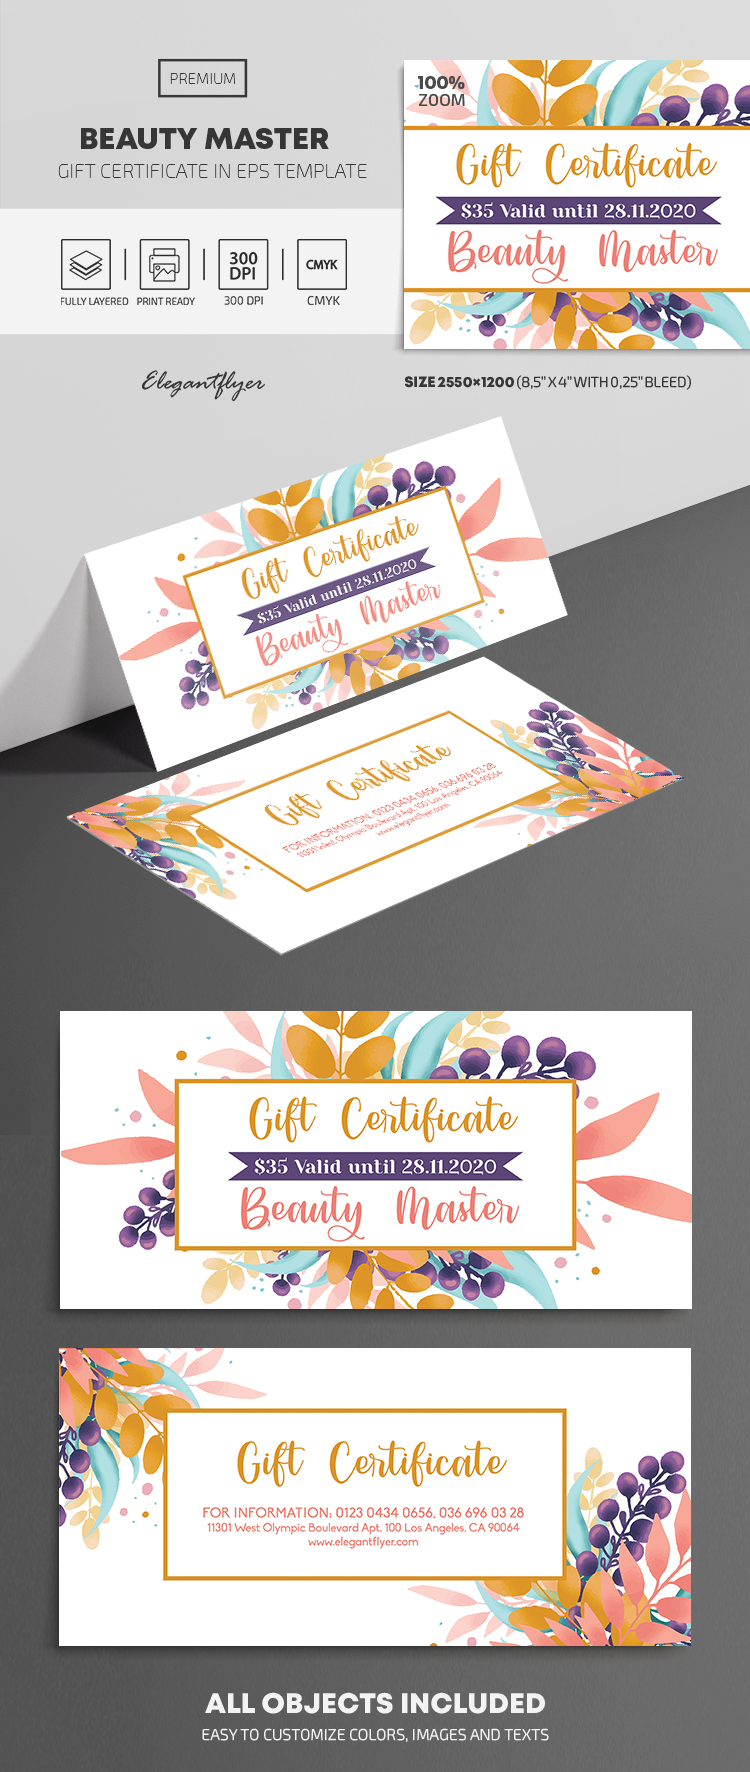 Beauty Master – Premium Gift Certificate Template in EPS